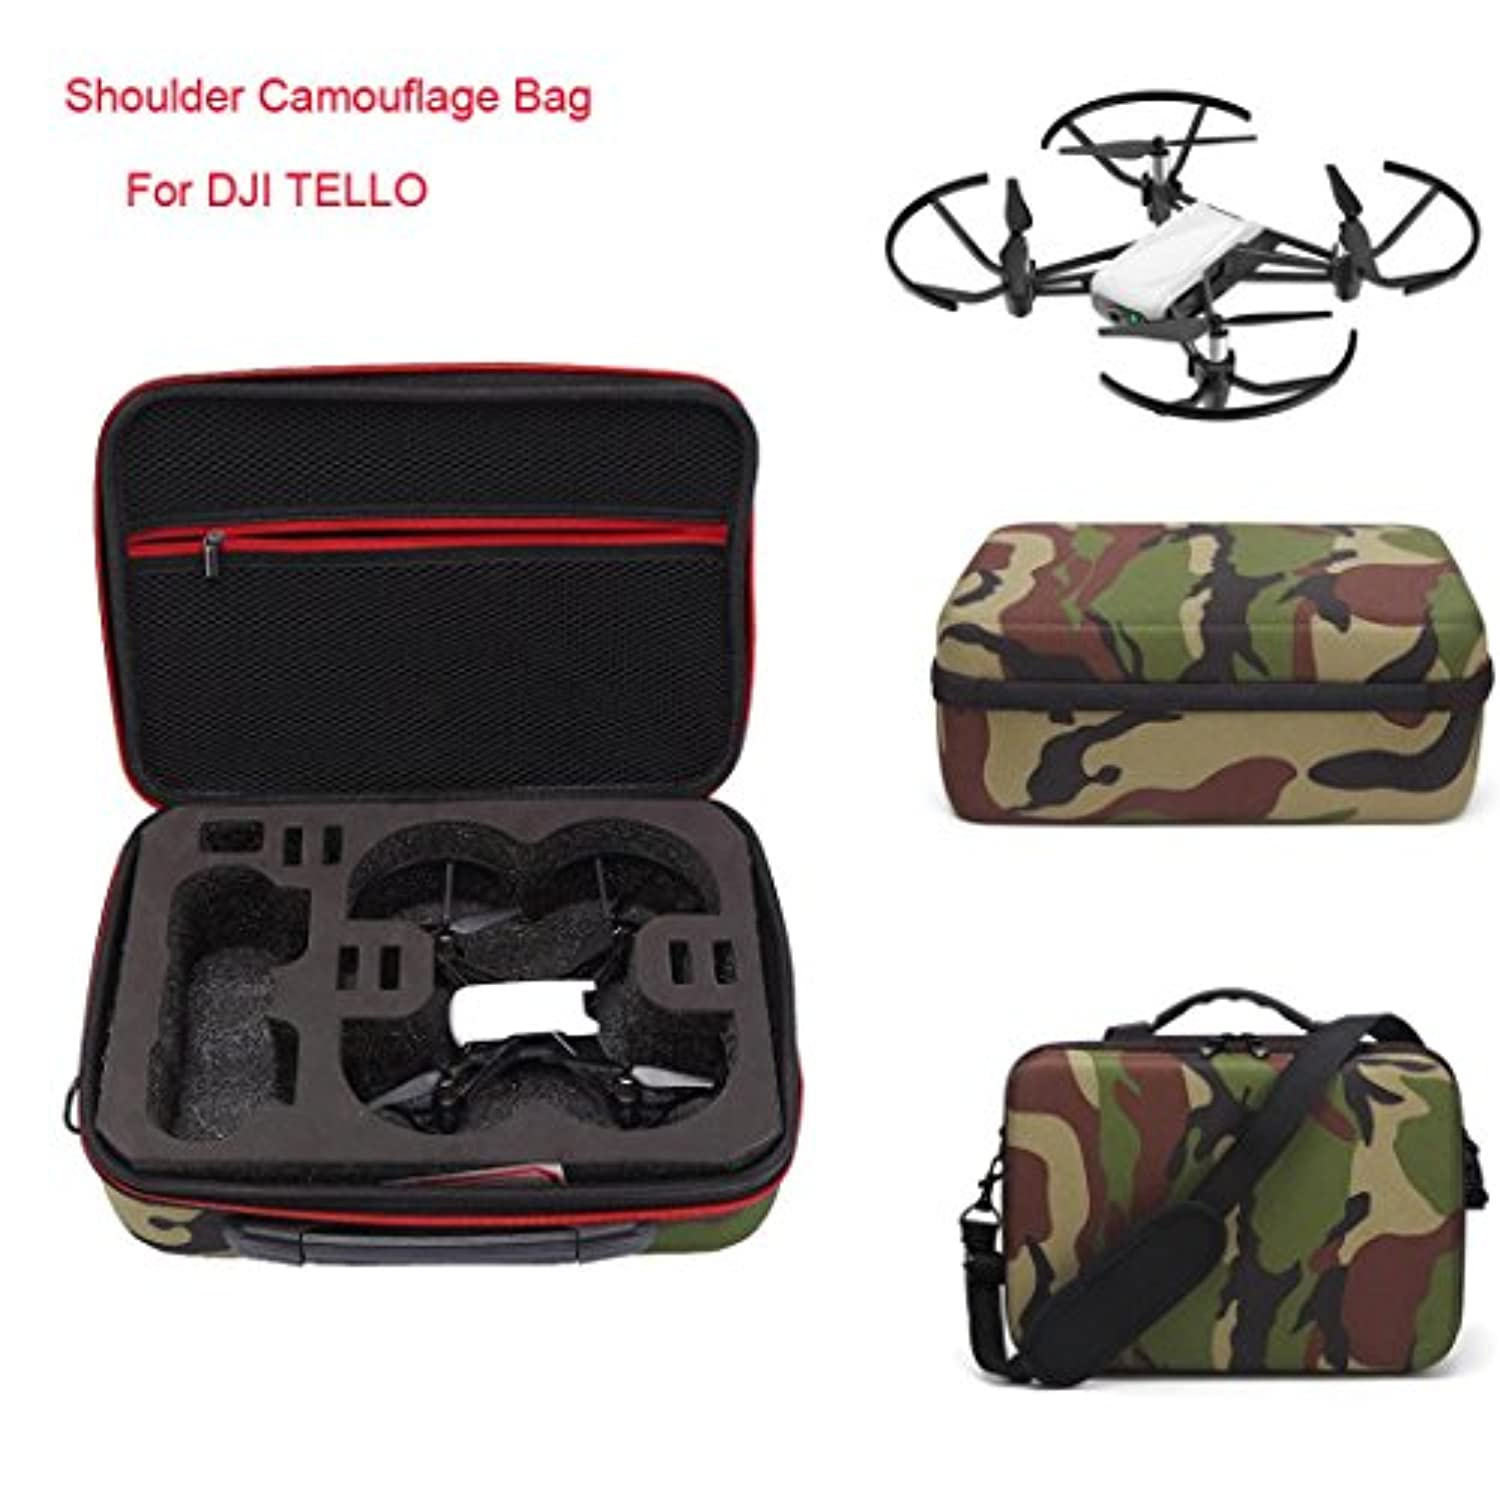 (Camouflage) - Inverlee Shoulder Camouflage Bag Case Protector Internal Waterproof For DJI TELLO Drone (Camouflage)